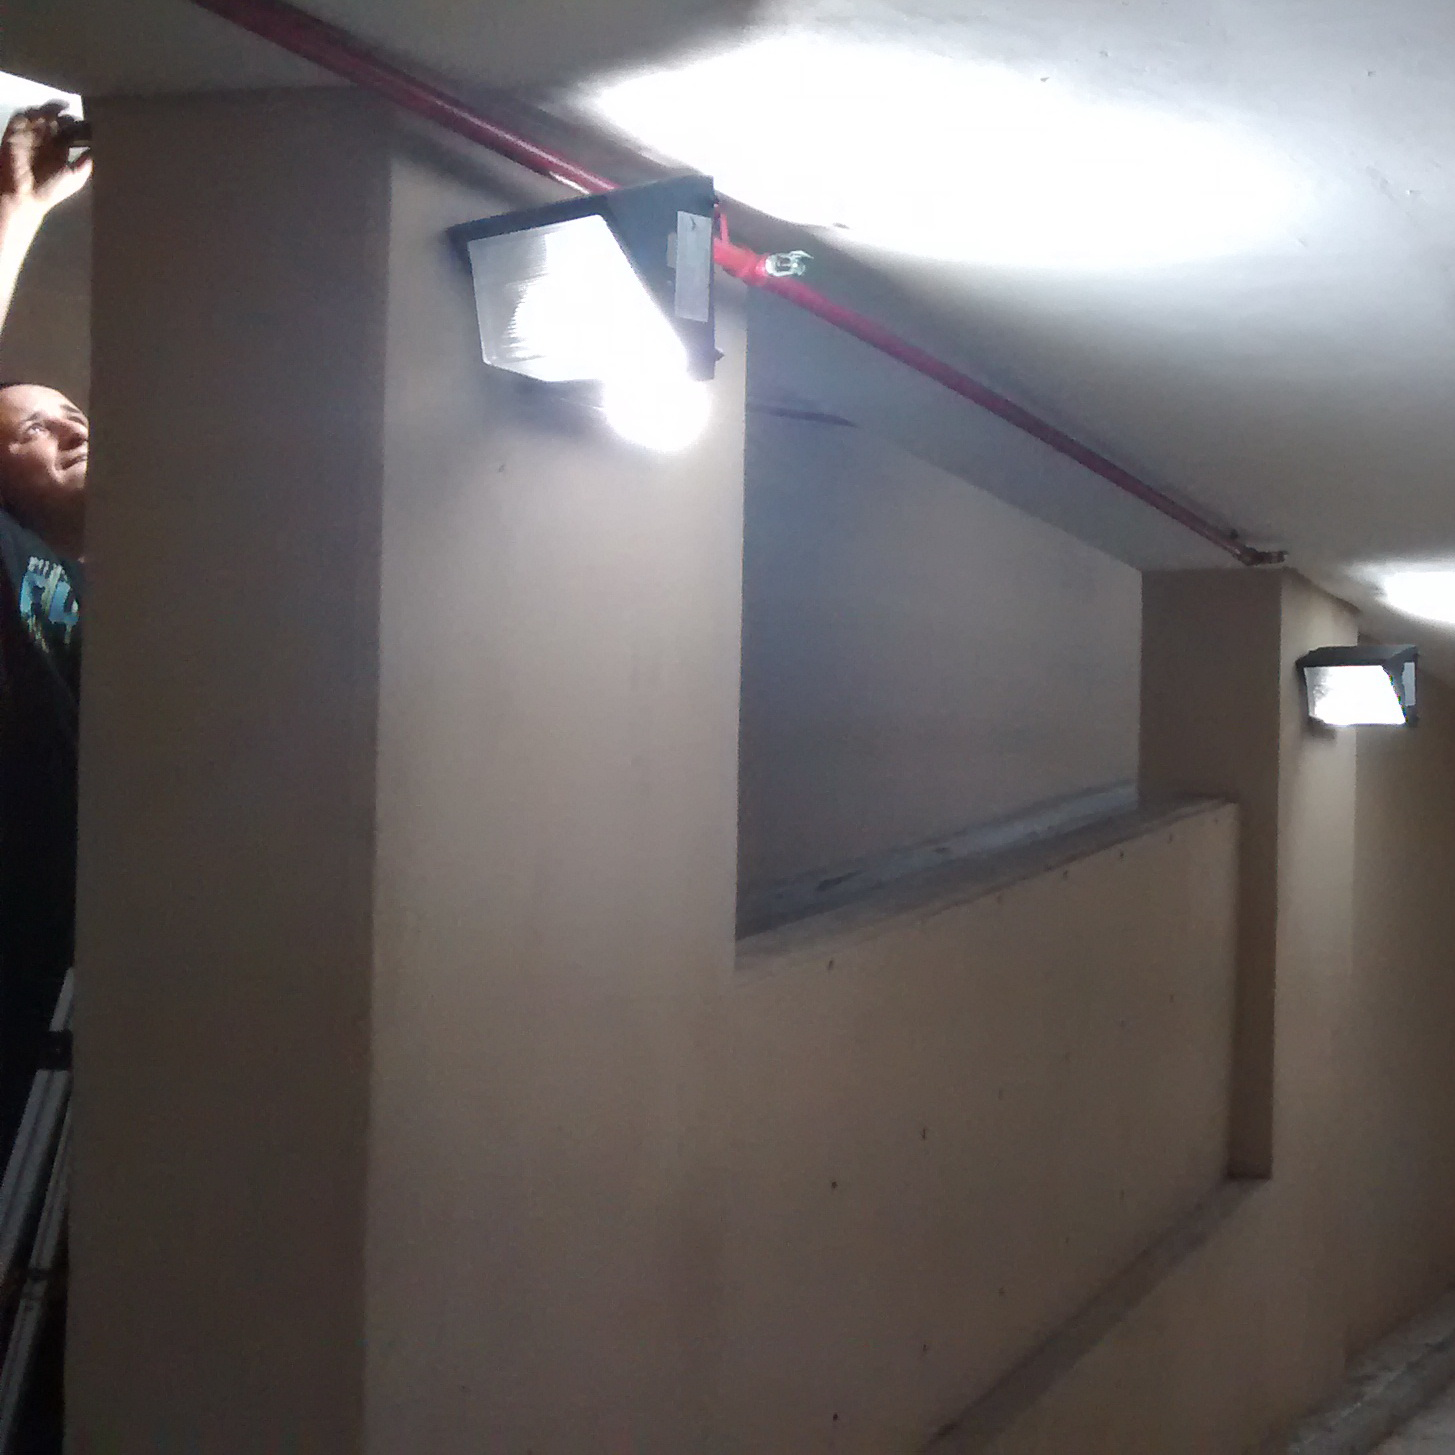 Led Wallpacks Light For Parking Lot Use Application In Usa